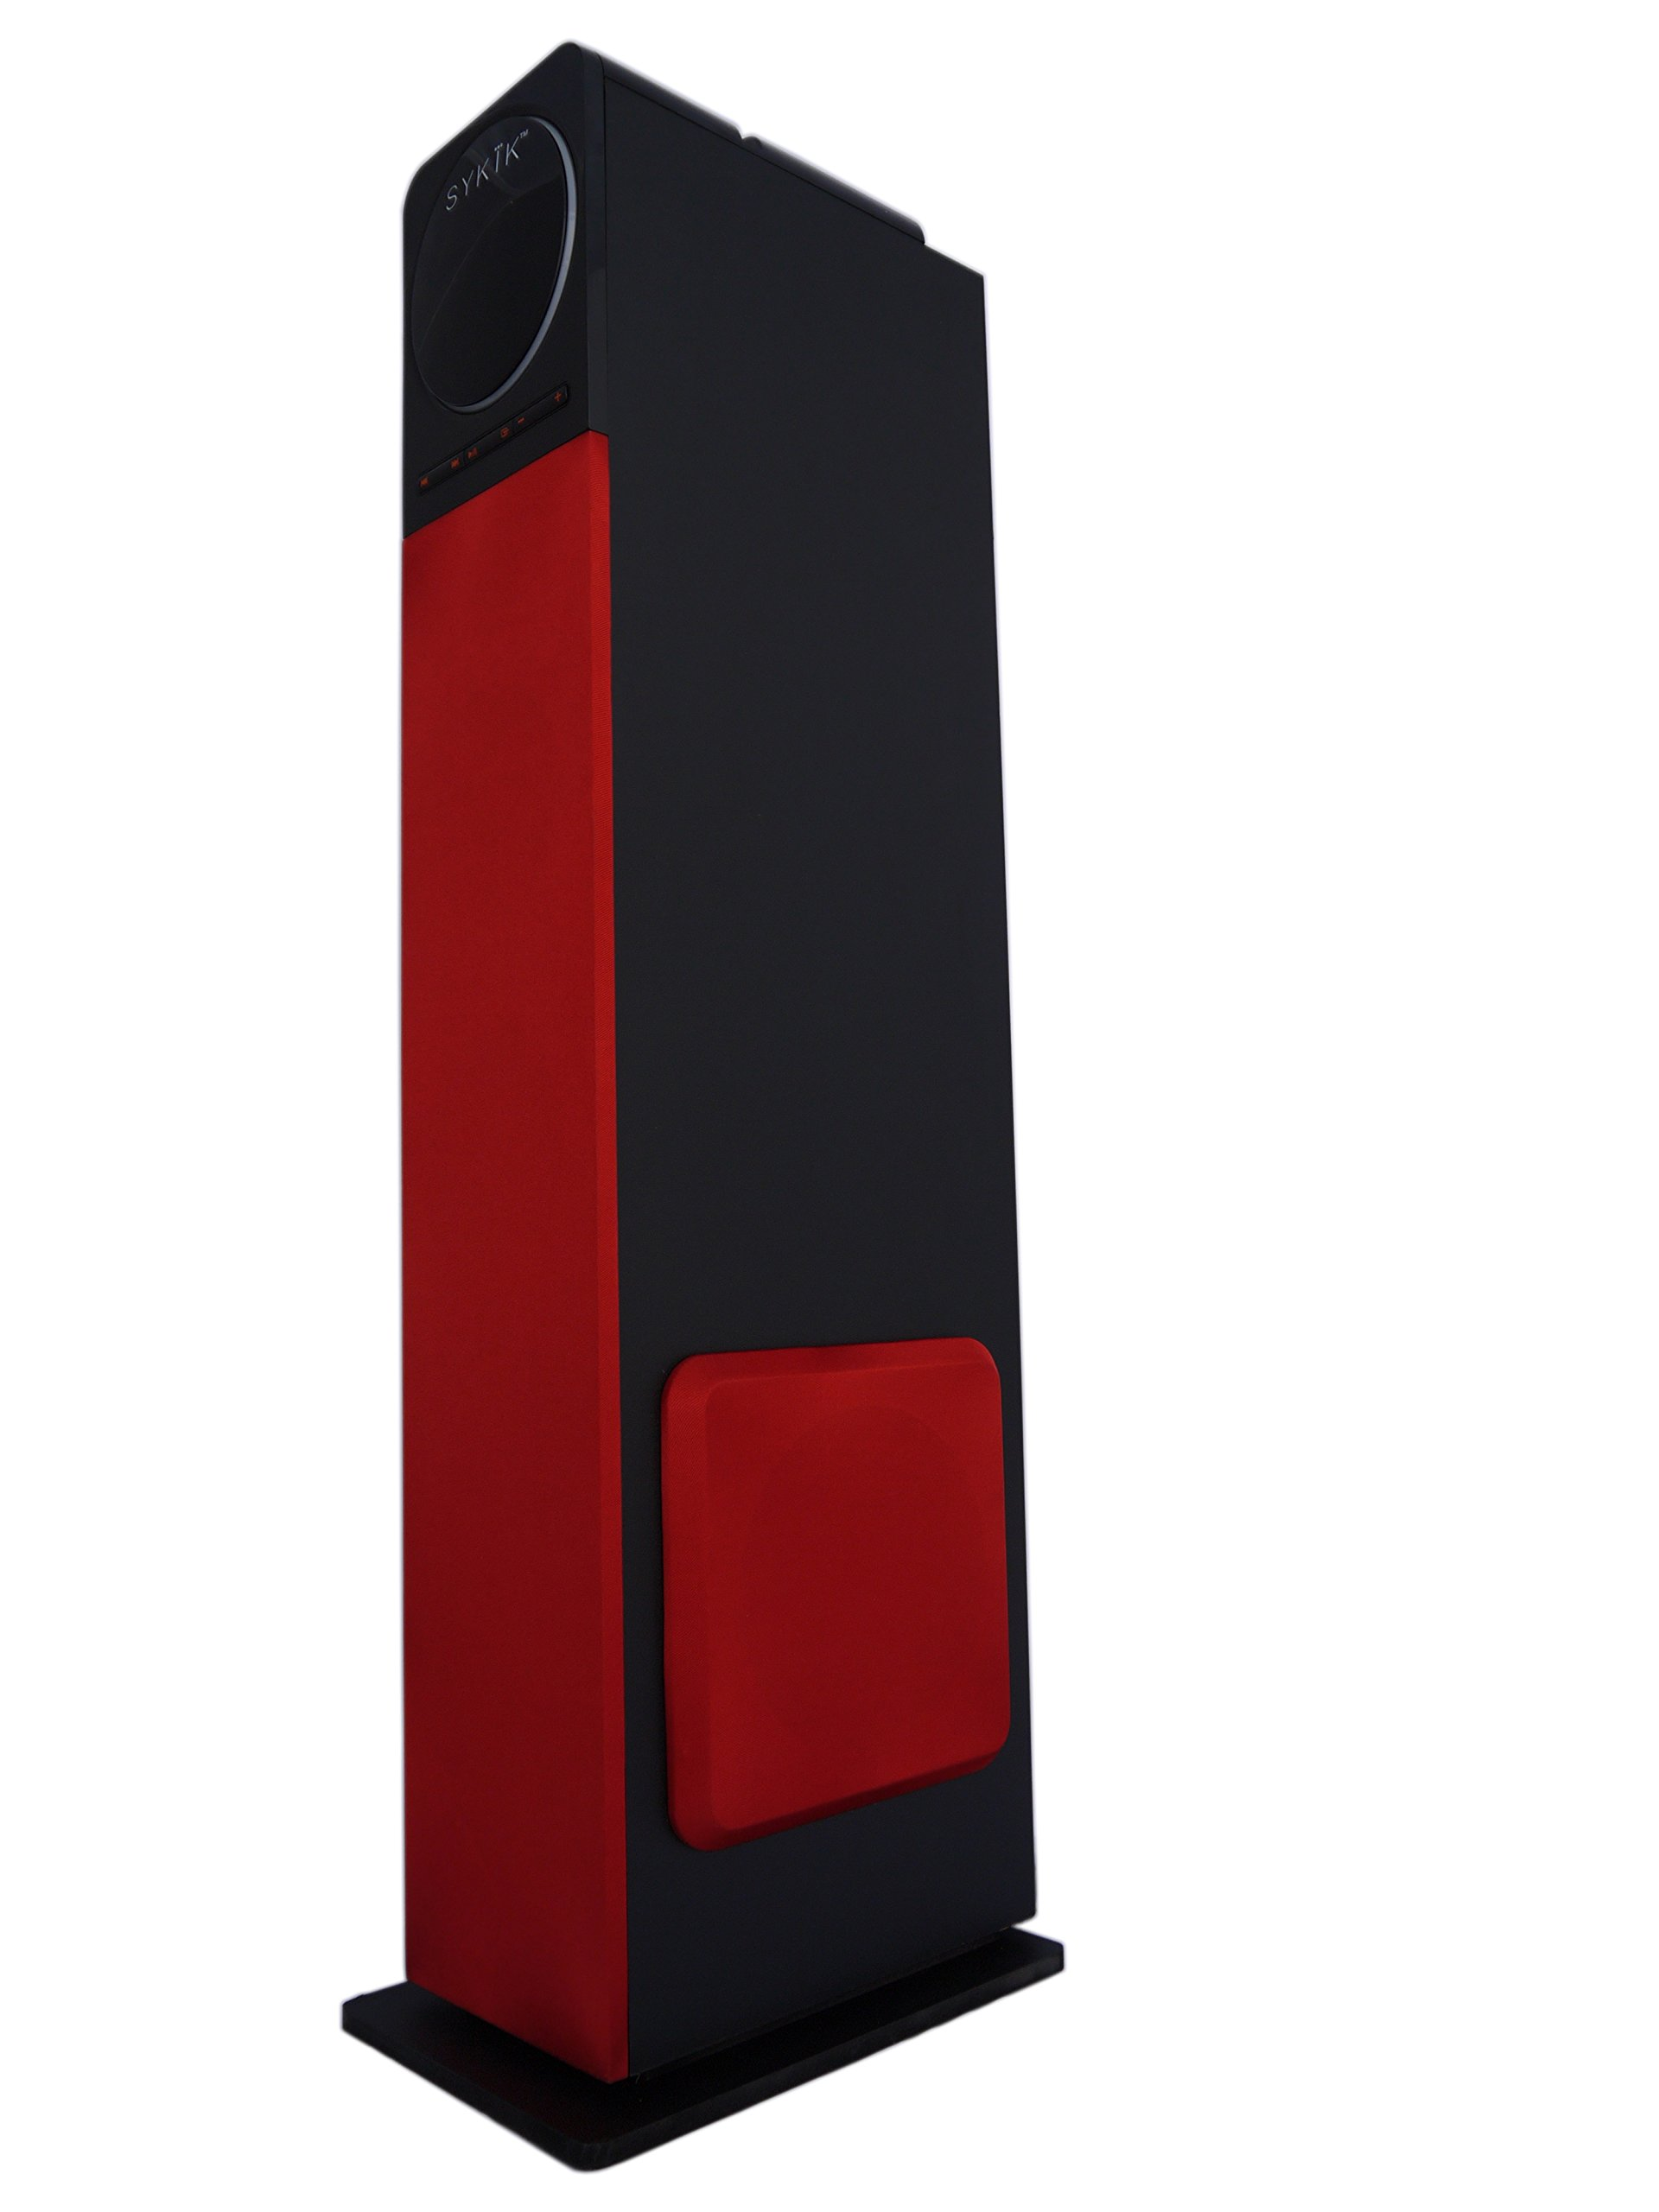 "Sykik Tower TSME26, High power 60W RMS Tower Speaker with Bluetooth, Powerful 6.5"" sub-woofer, pair of 4"" drivers, SD, USB AUX jacks. FM Radio and Remote. (red)"